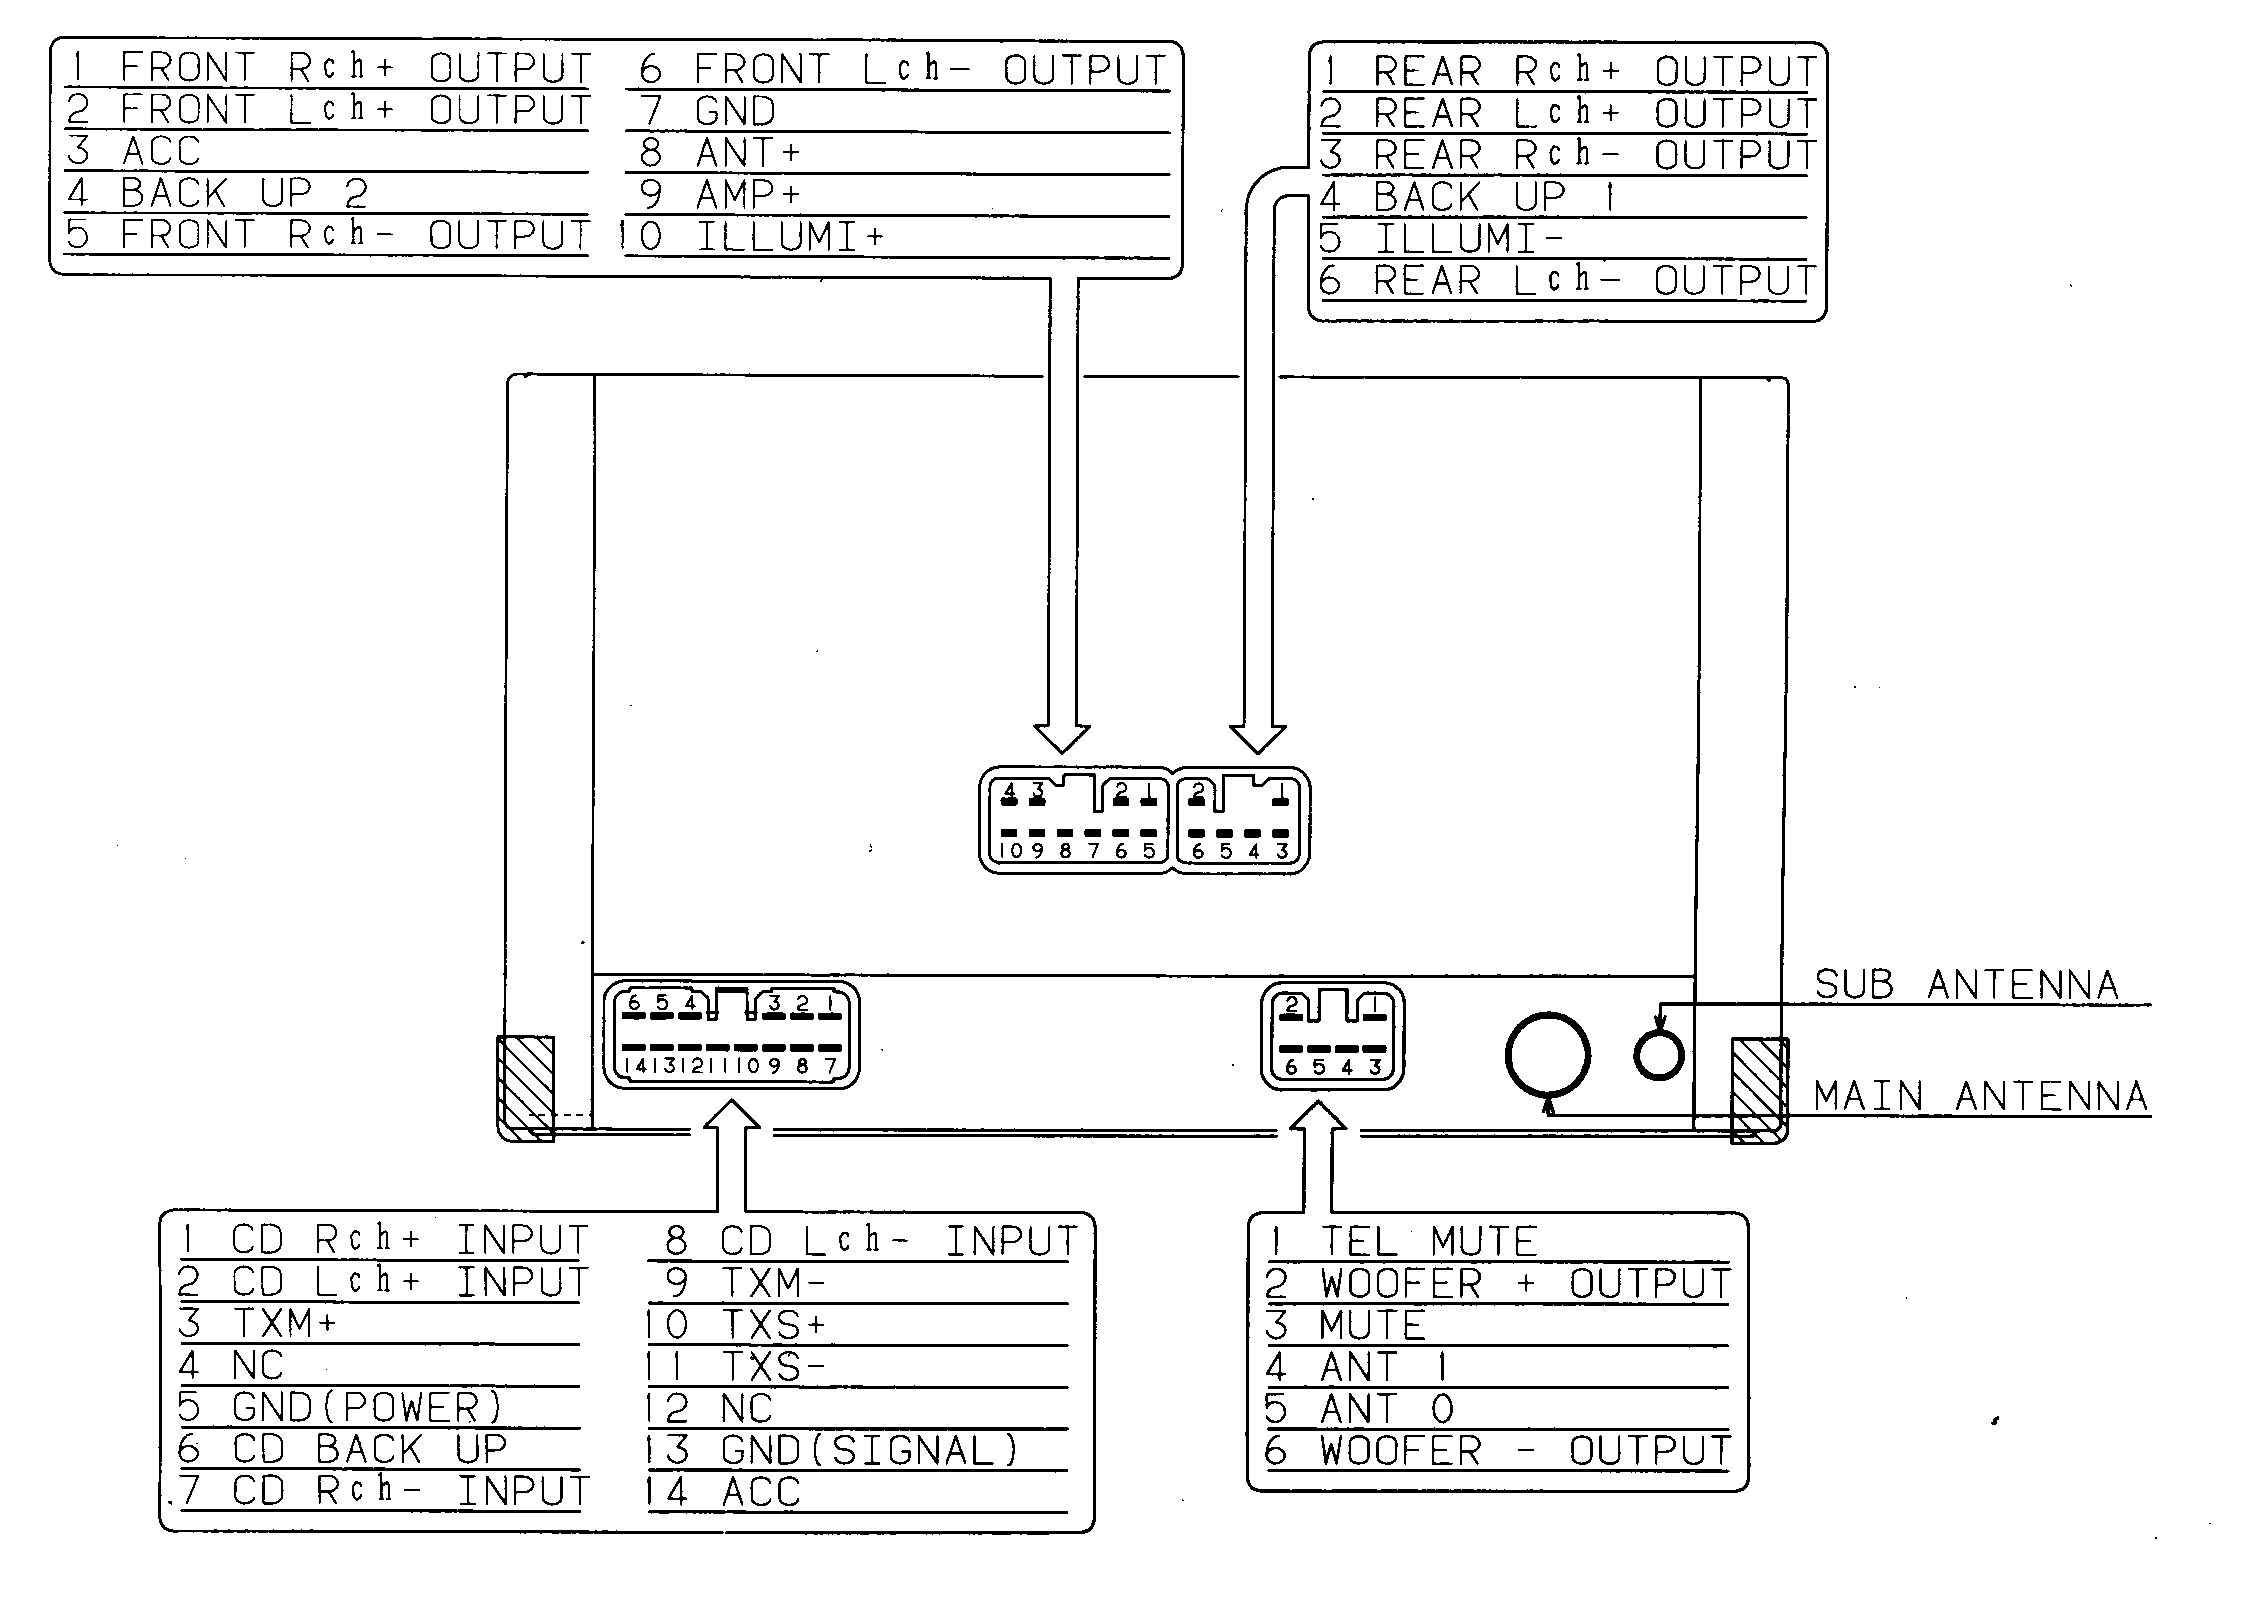 WireHarnessLexus121001 car audio wire diagram codes lexus factory car stereo repair audio wire diagram at edmiracle.co